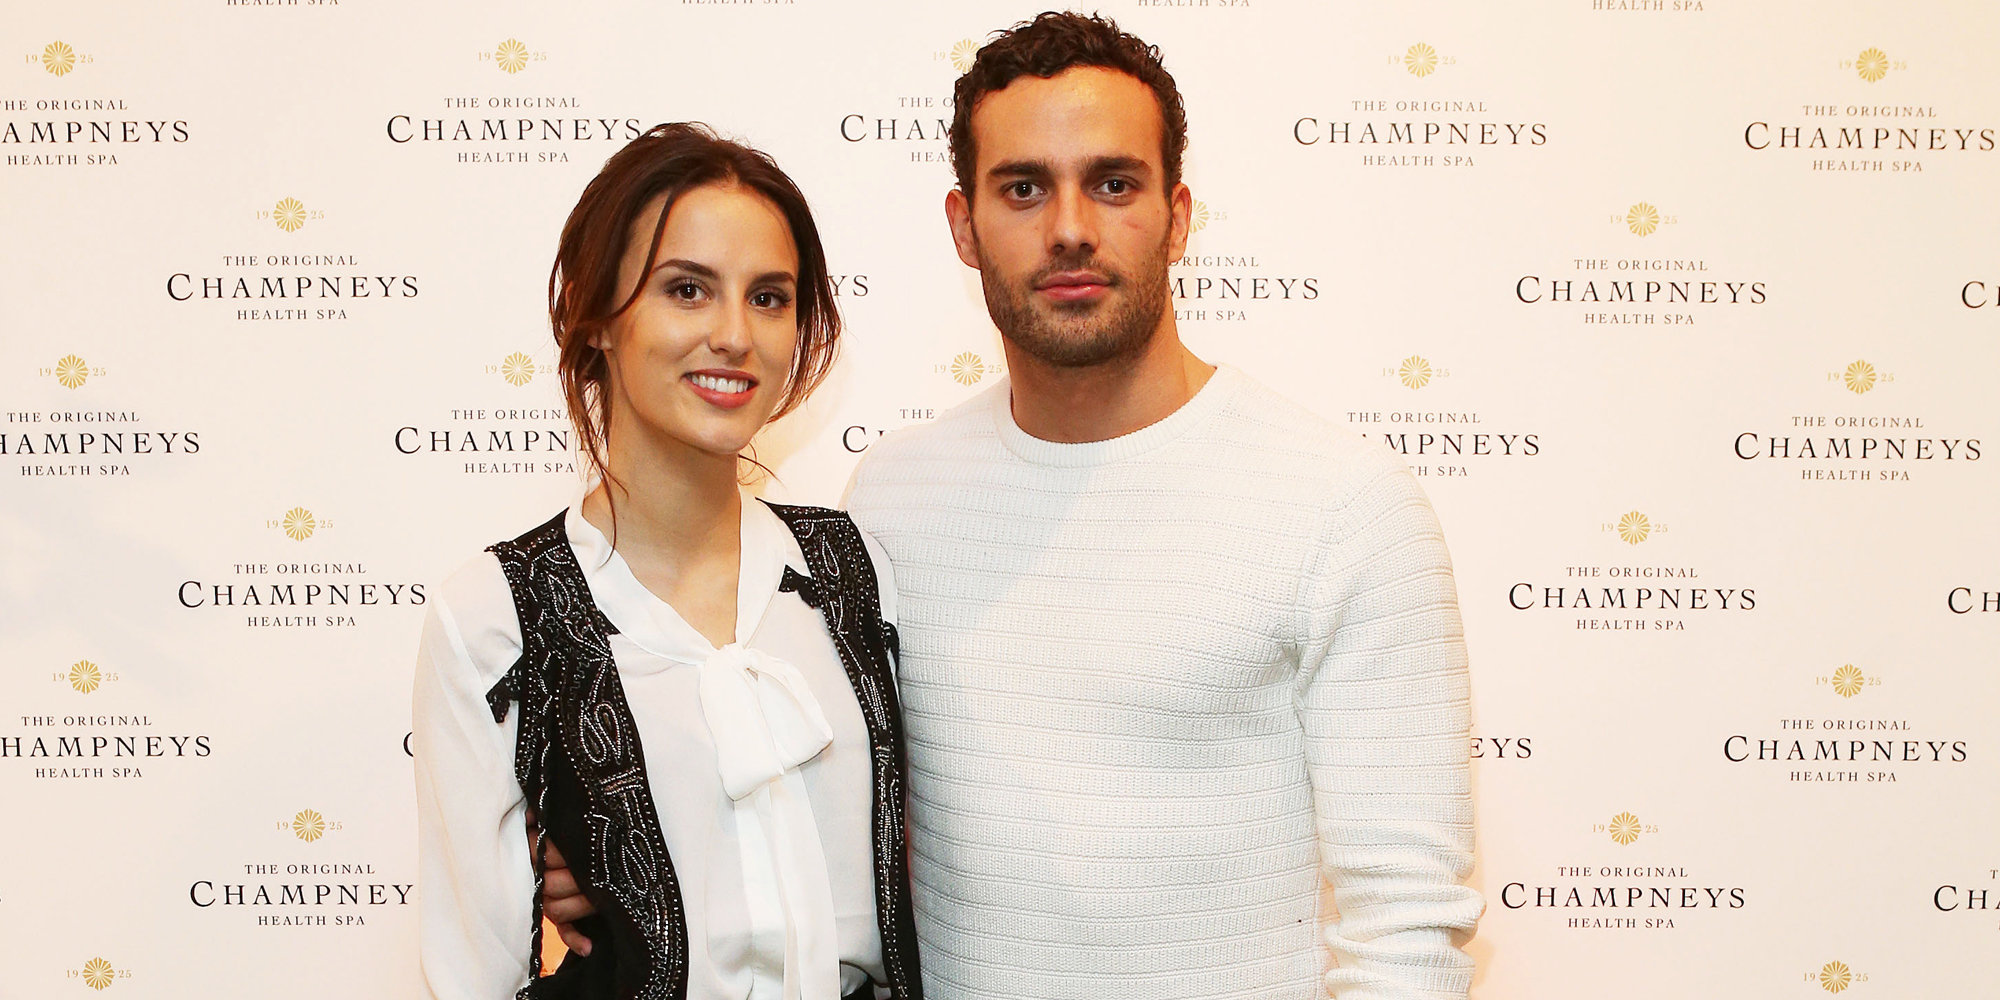 Lucy Watson and James Dunmore at Champneys product re-launch event